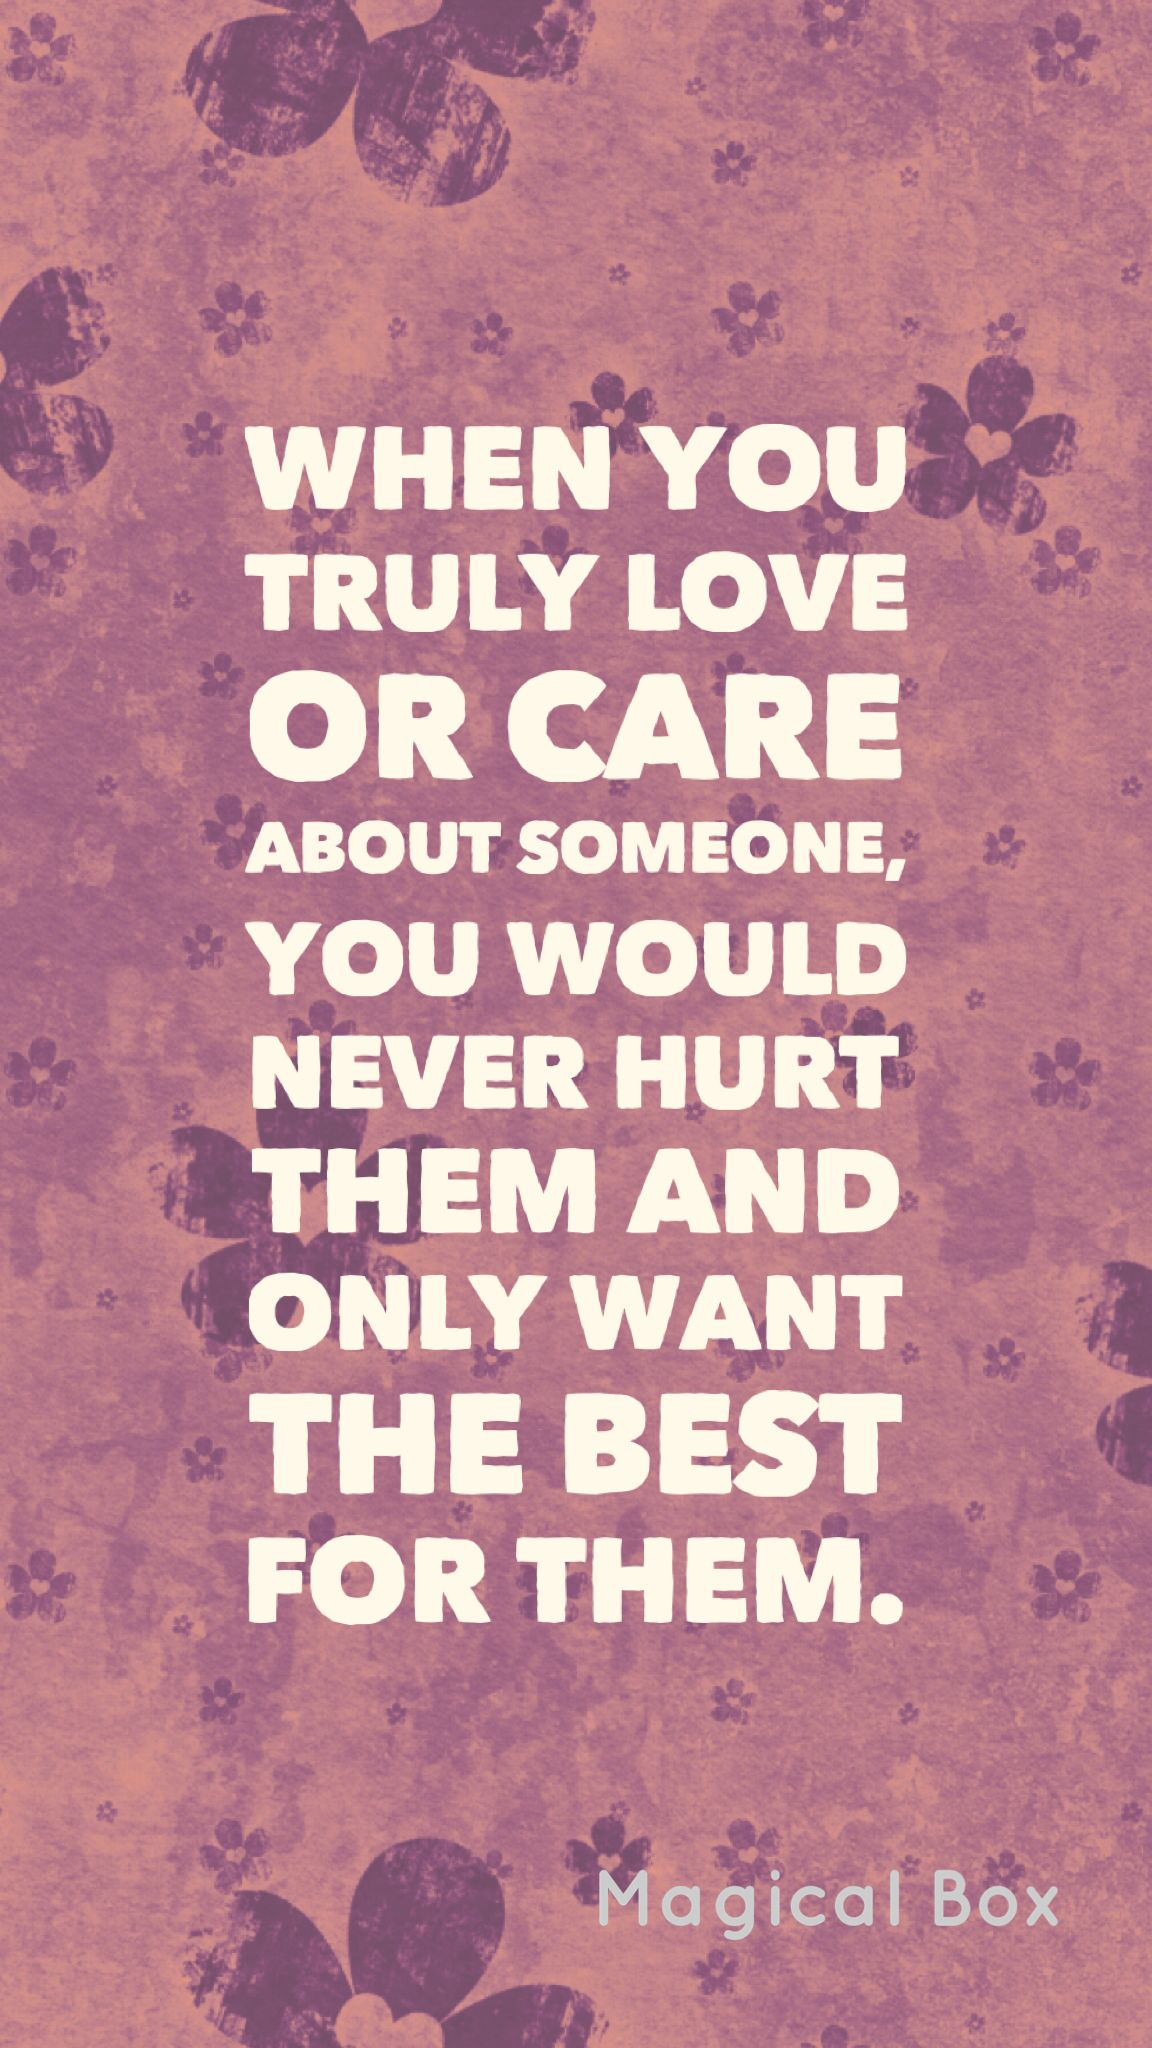 When You Truly Love Or Care About Someone You Would Never Hurt Them And Only Want The Best For Them Loving Someone Quotes Meaningful Quotes Spiritual Quotes